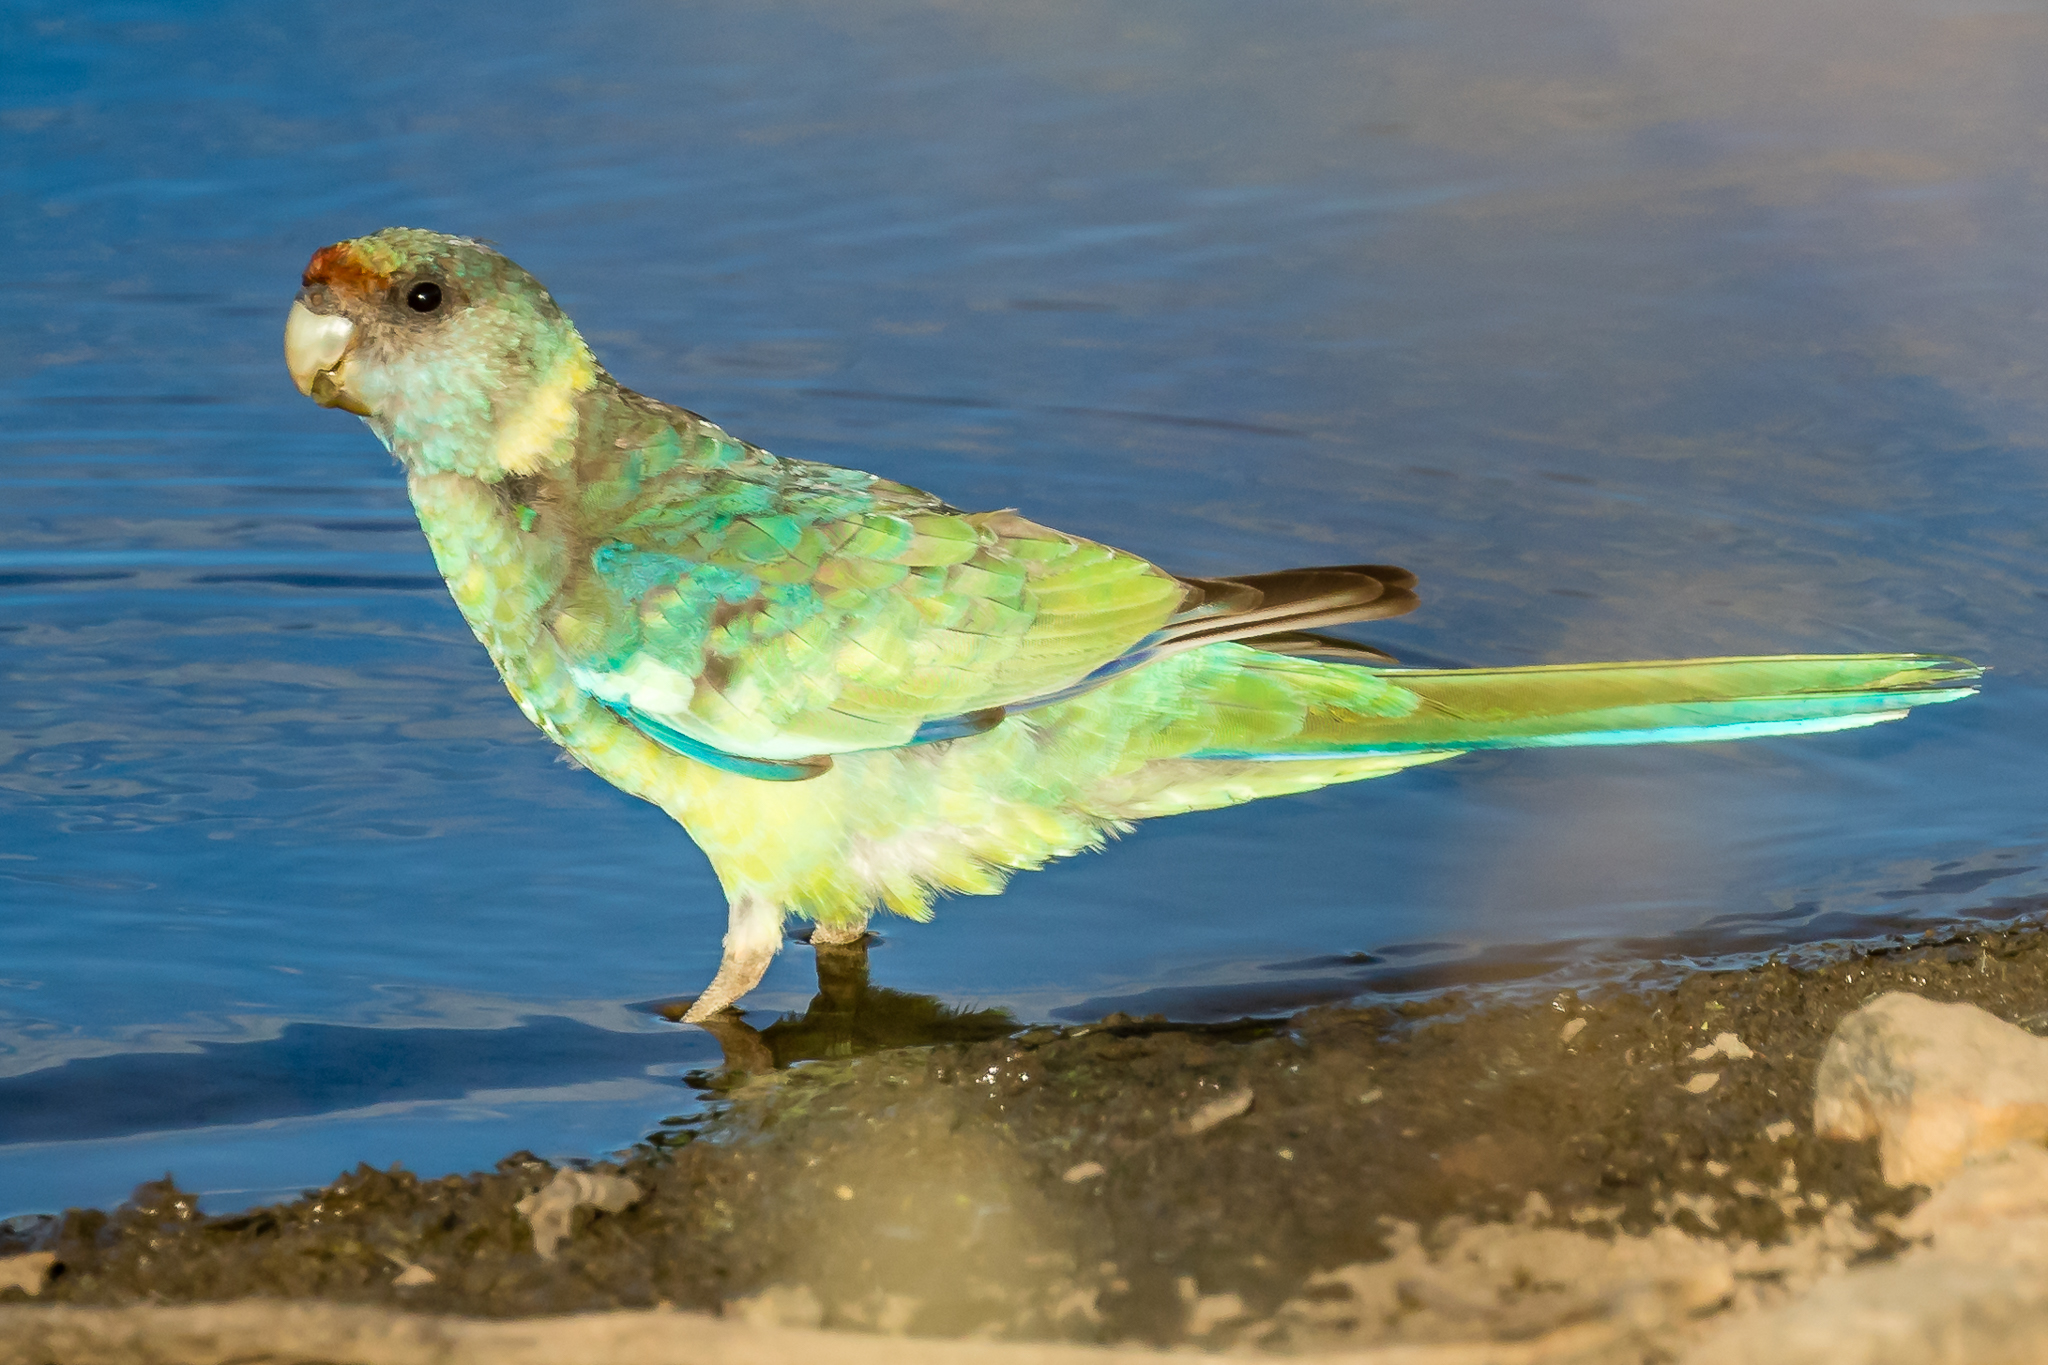 """The """"Mallee Ringneck"""" (38 cm) is one of the Australian Ringneck races found across Australia's dry centre and west. The Mallee Ringneck inhabits southern inland Queensland to central NSW and SA. They feed on seeds, fruits, nectar, insects and grain."""